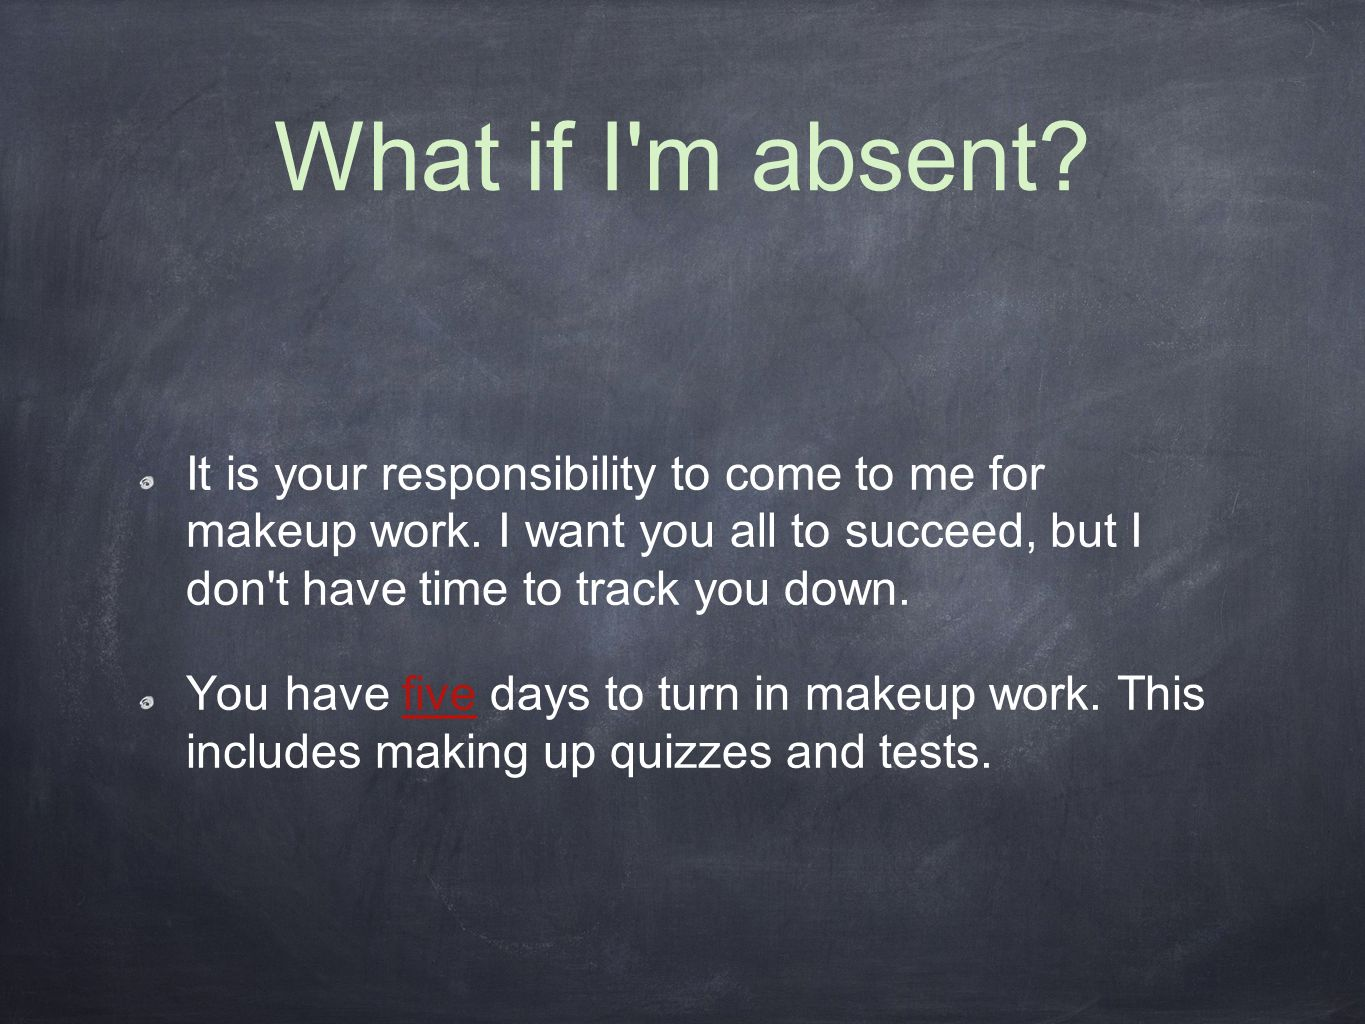 What if I m absent. It is your responsibility to come to me for makeup work.